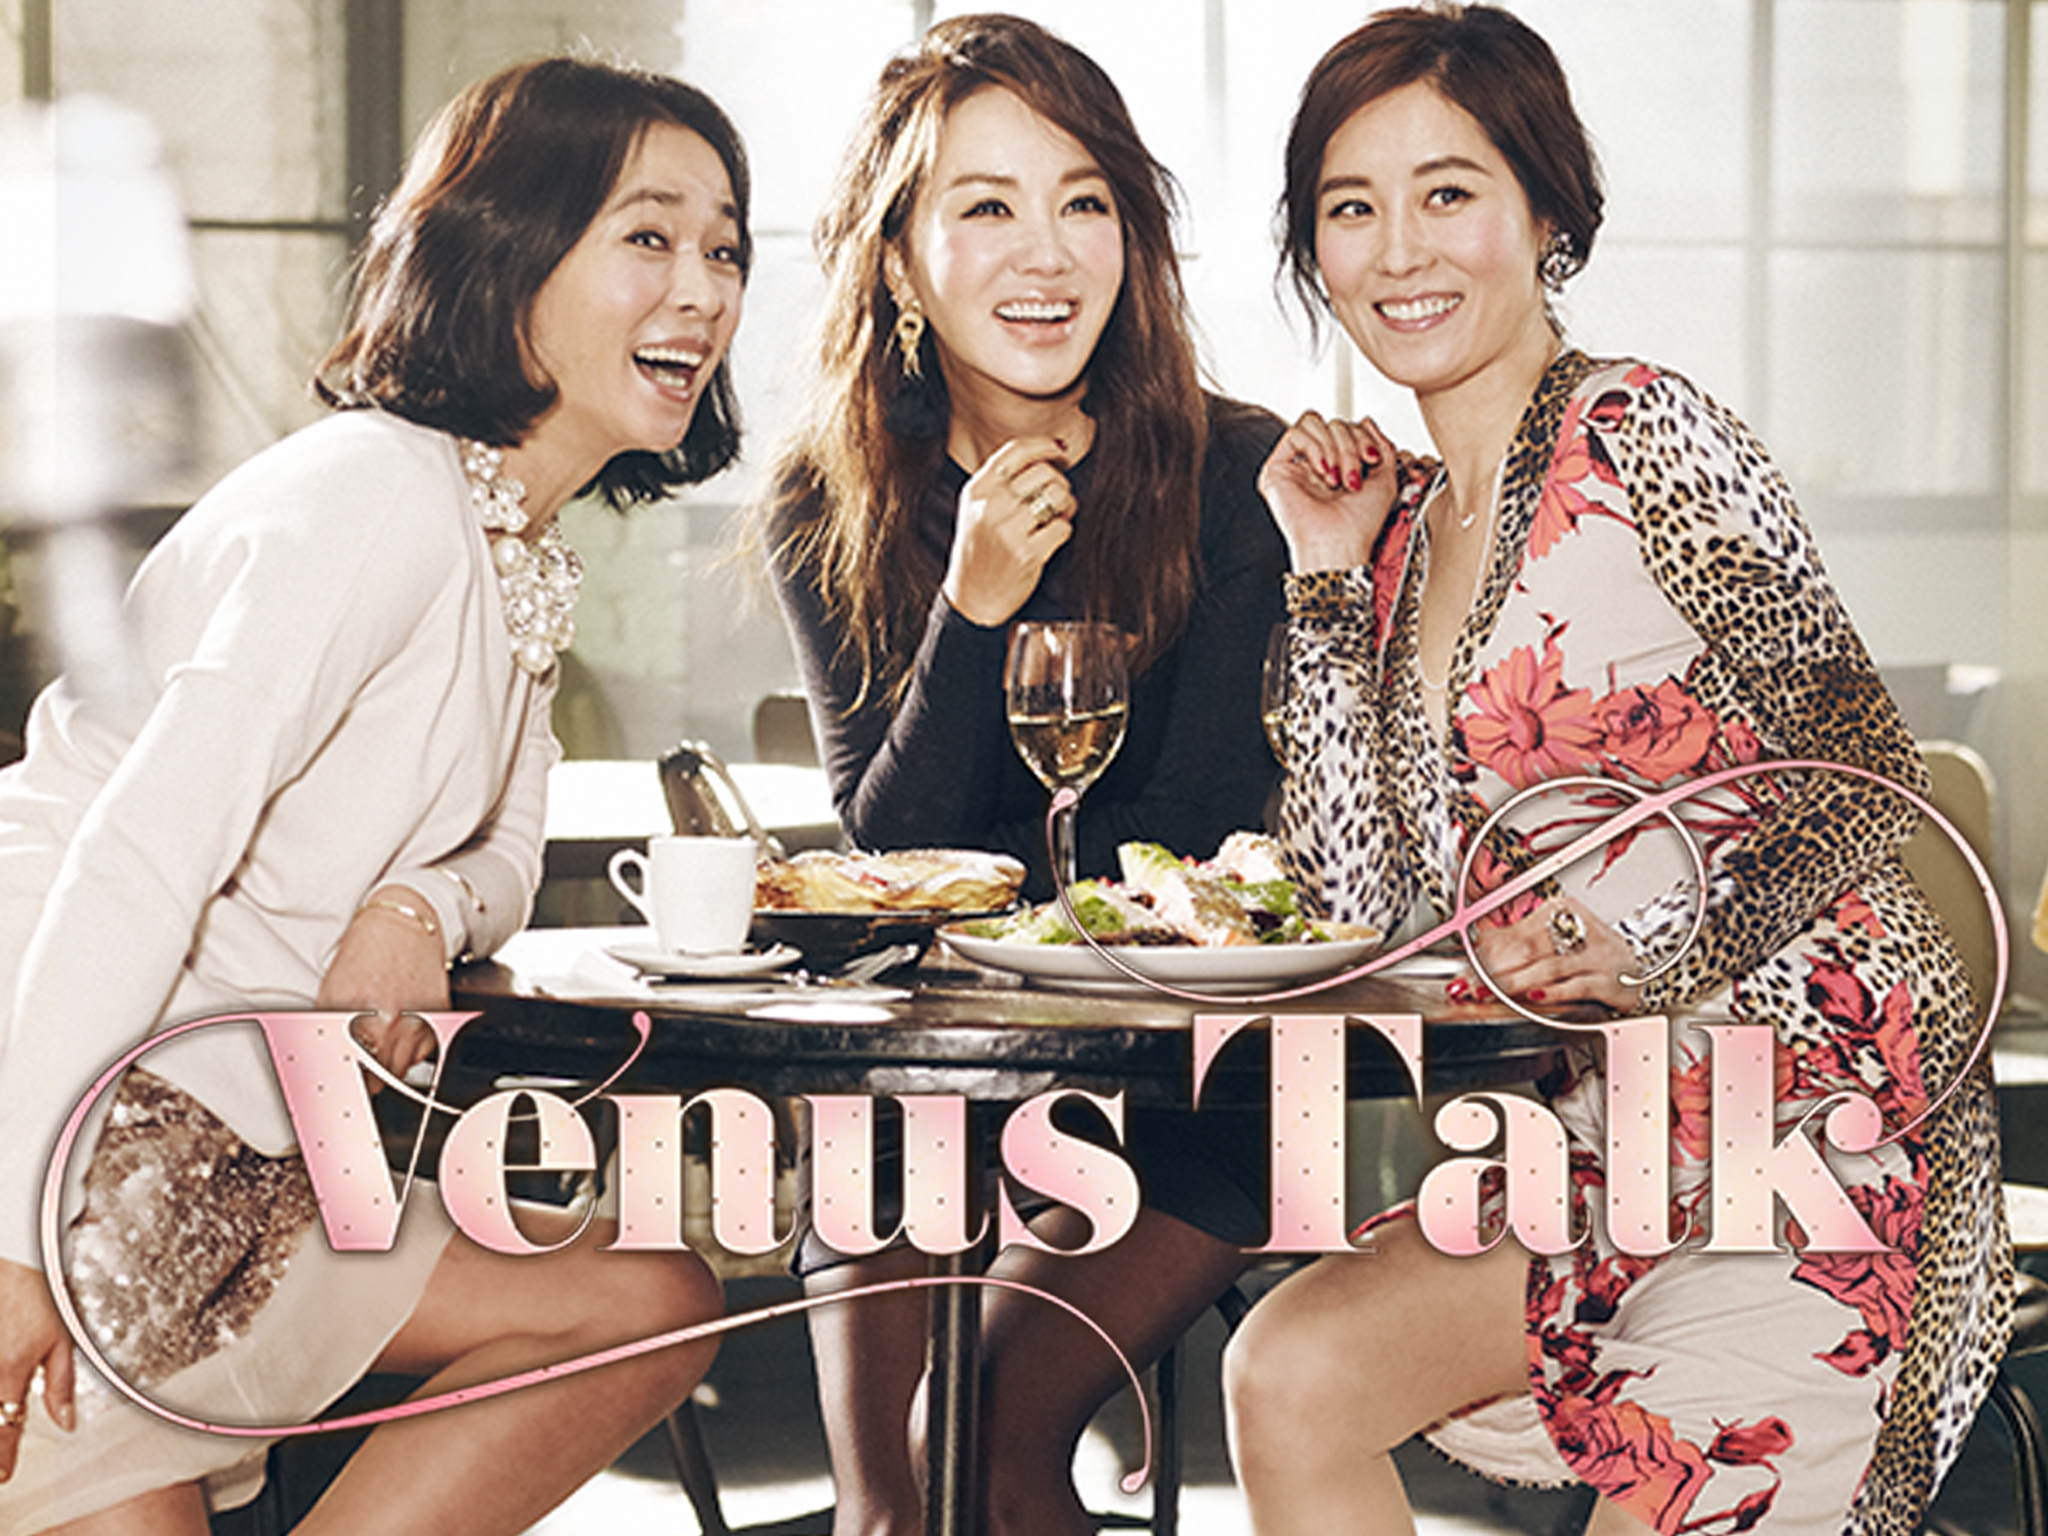 Independent TV producer Shin-Hye, self-assured housewife Mi-Yeon, and single mom Hae-Young are a tight-knit group of 40-something  friends going through the ups and downs of their lives and loves in modern day Seoul. Directed by Kwon Chil-in.